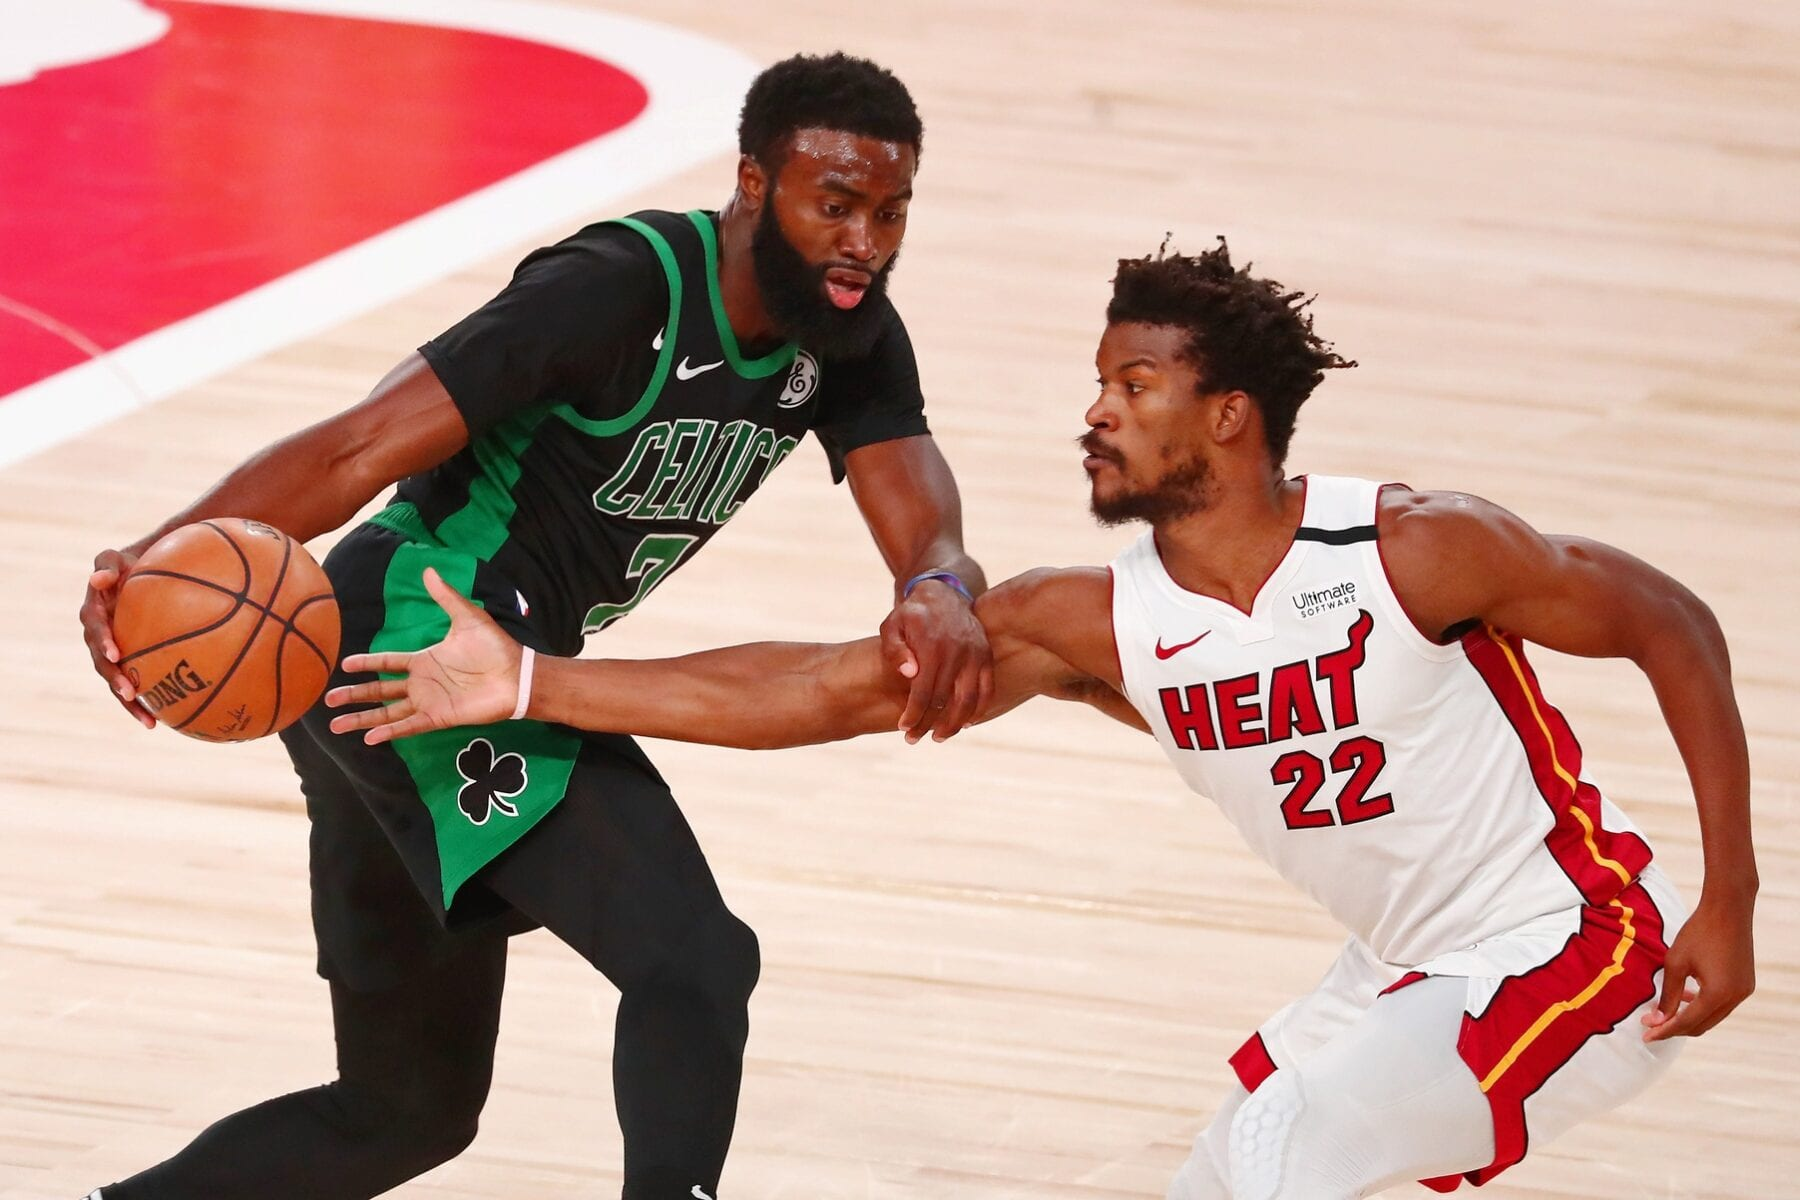 Heat vs Celtics, Game 3: Full Betting Insights + How to Bet Quickly & Easily